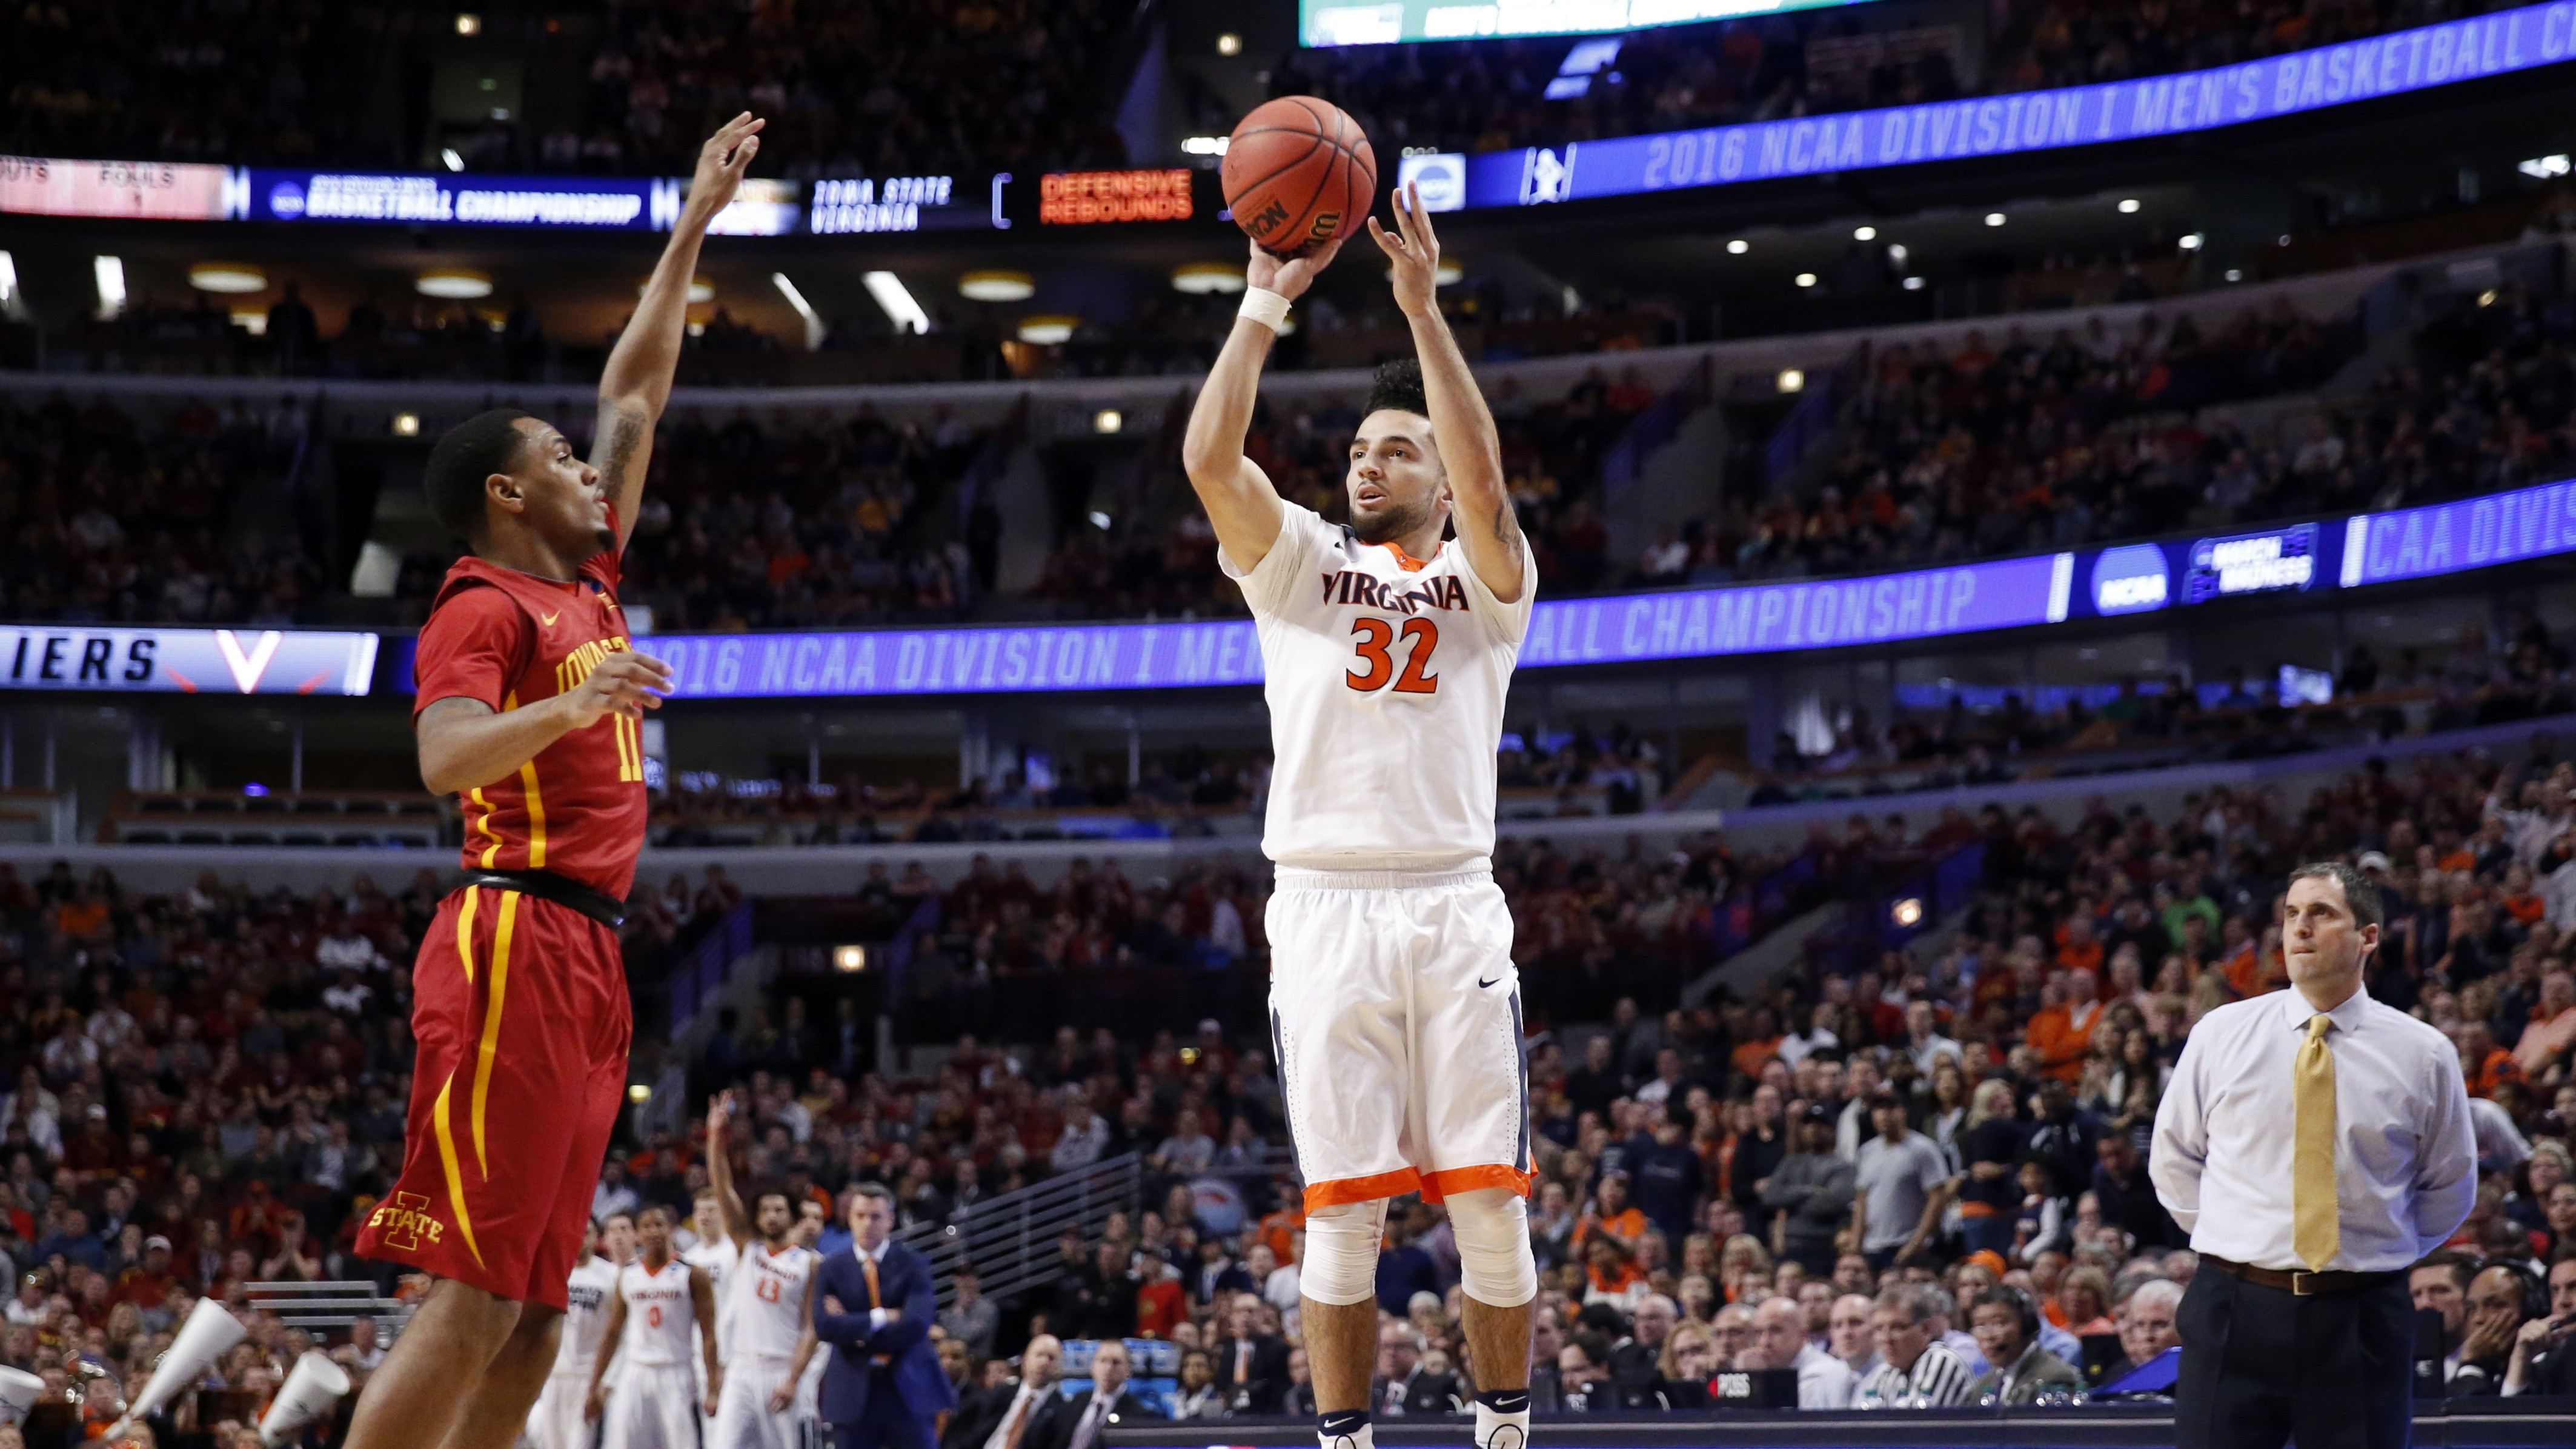 Virginia's London Perrantes (32) shoots against Iowa State's Monte Morris (11) during the first half of a college basketball game in the regional semifinals of the NCAA Tournament, Friday, March 25, 2016, in Chicago. (AP Photo/Charles Rex Arbogast)